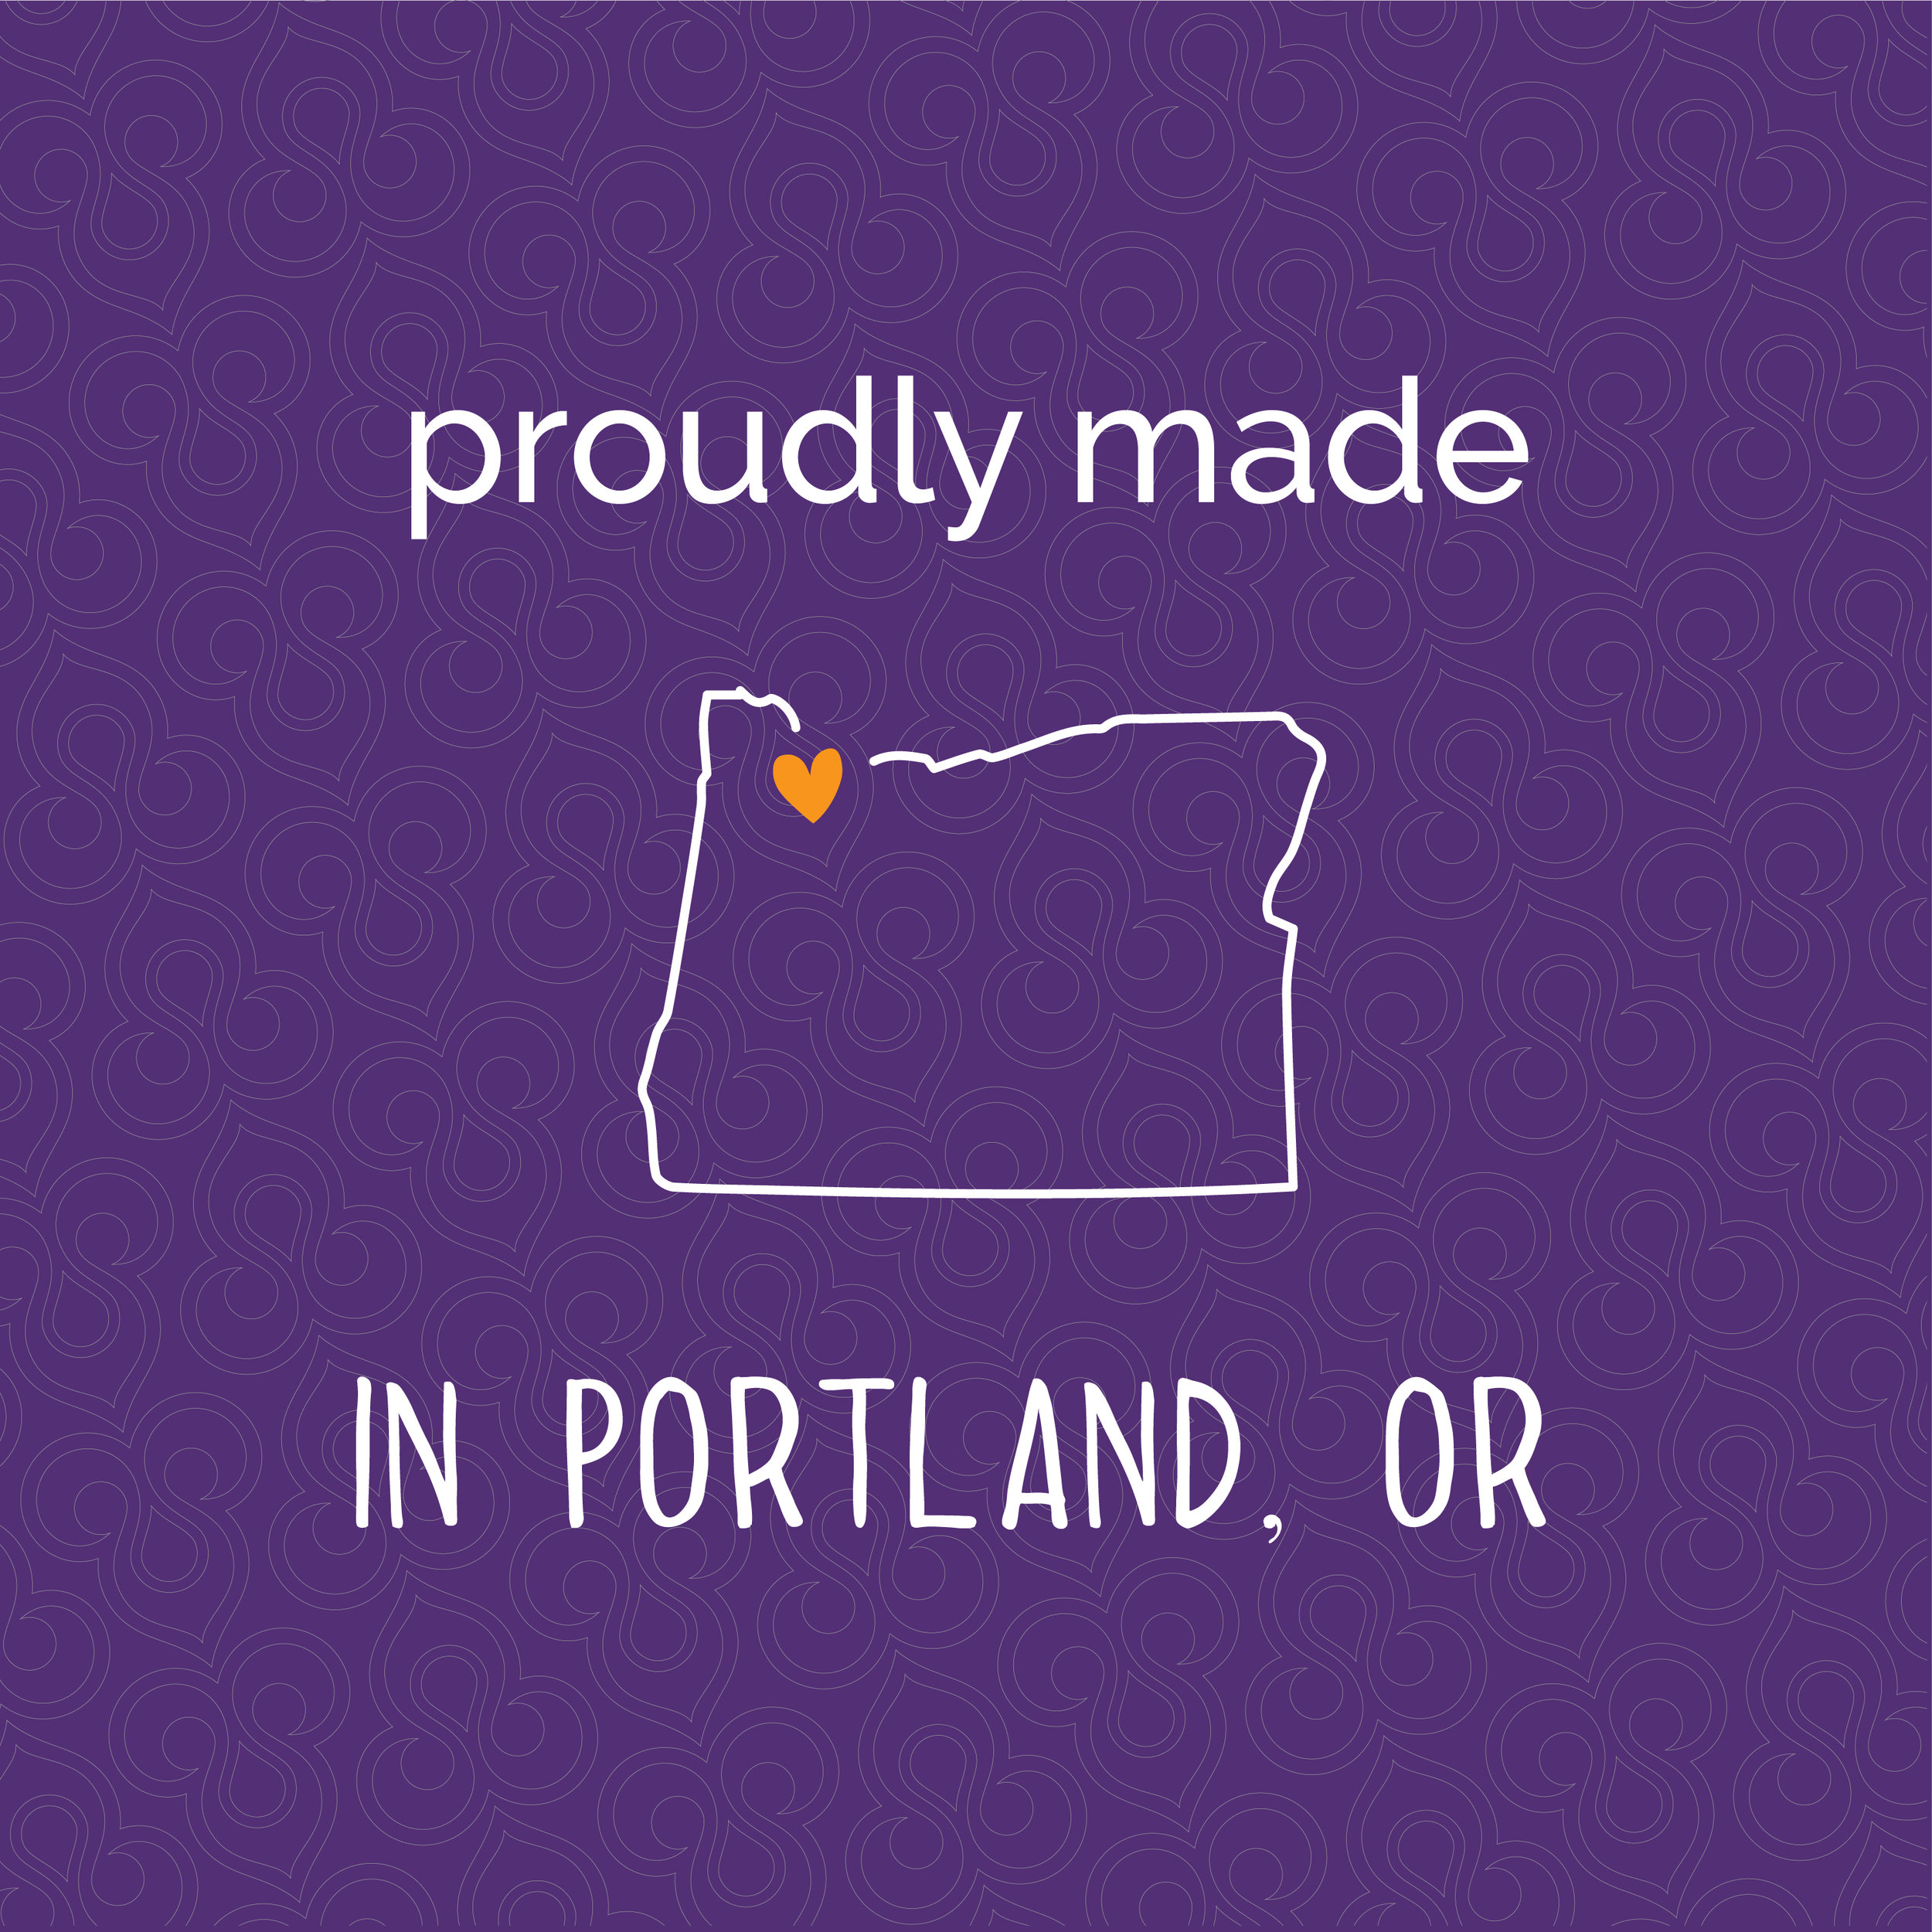 Proudly made in PDX.jpg